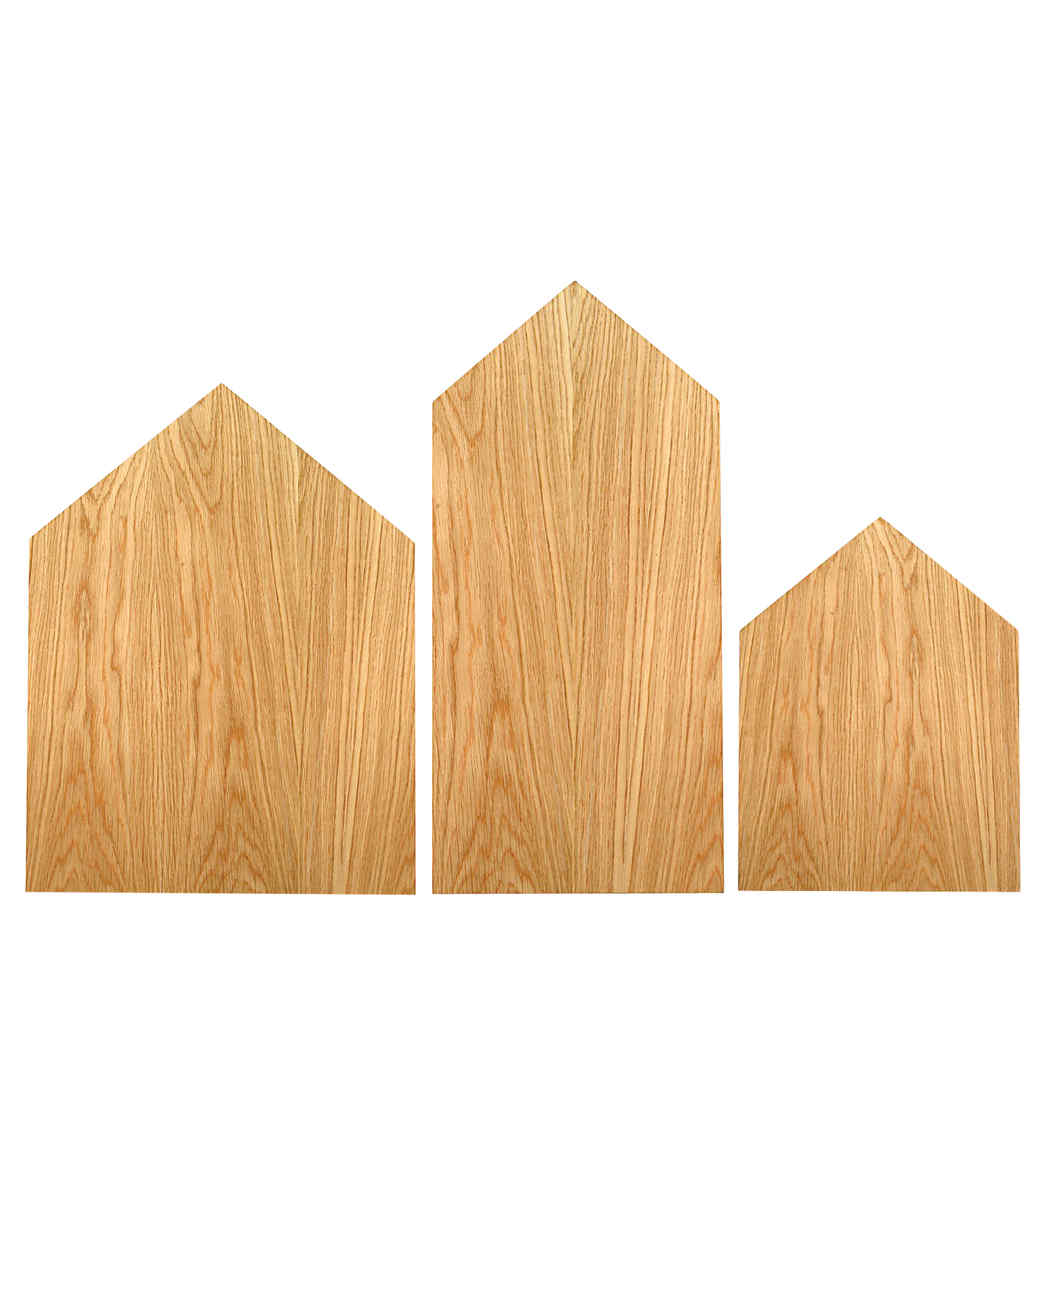 cutting-board-finds-0811mld107444.jpg